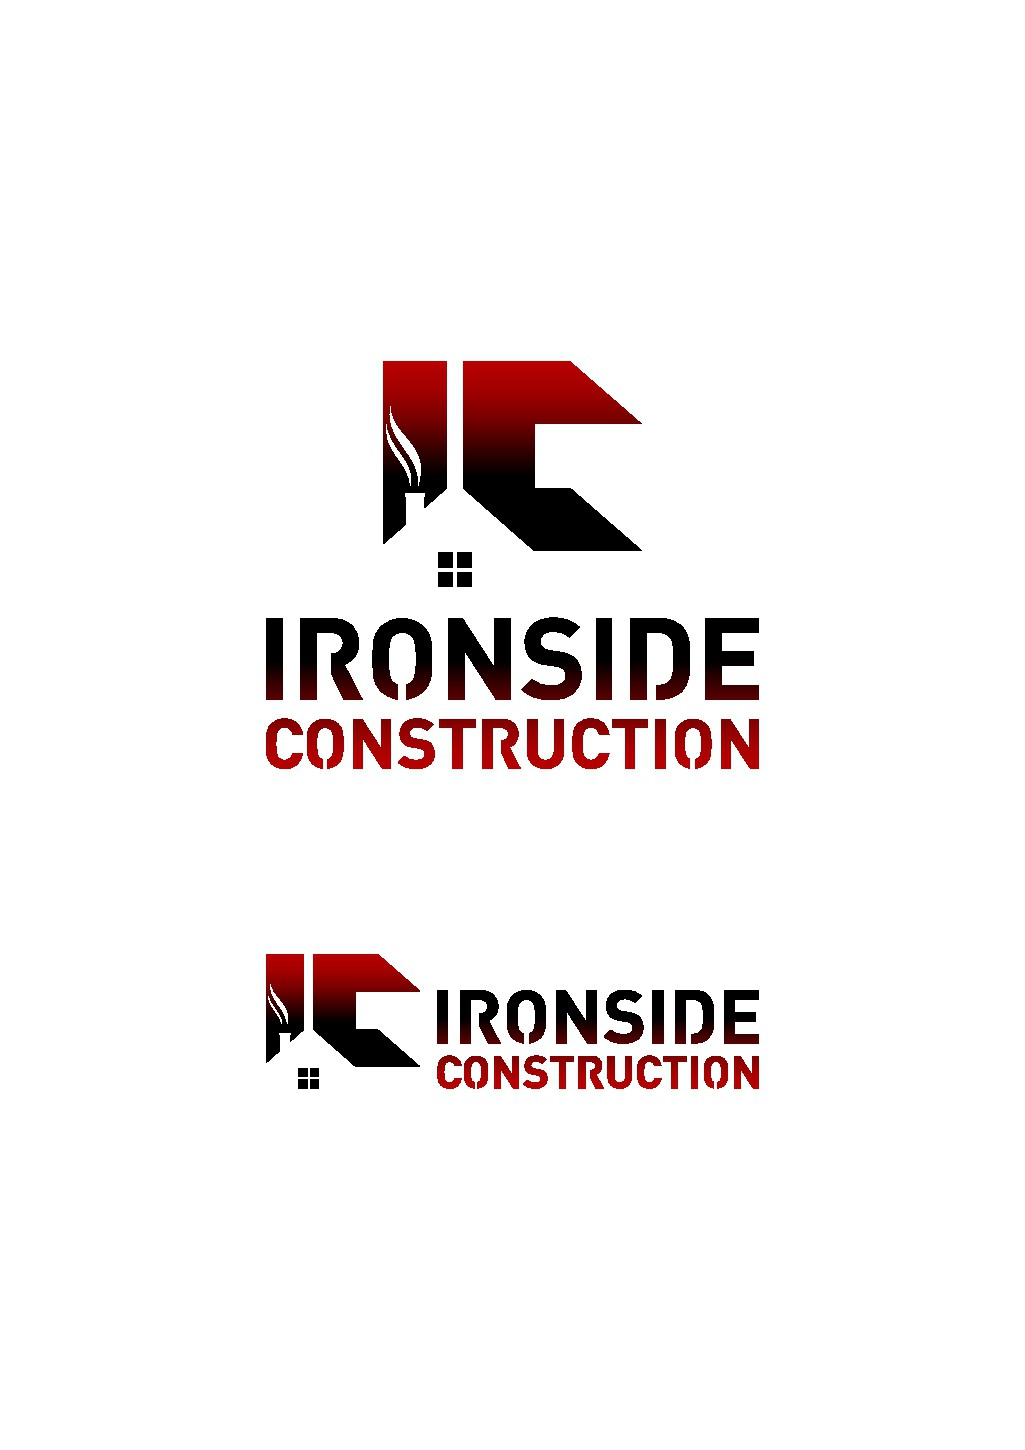 A northwest construction company looking for a sleek revamp of logo